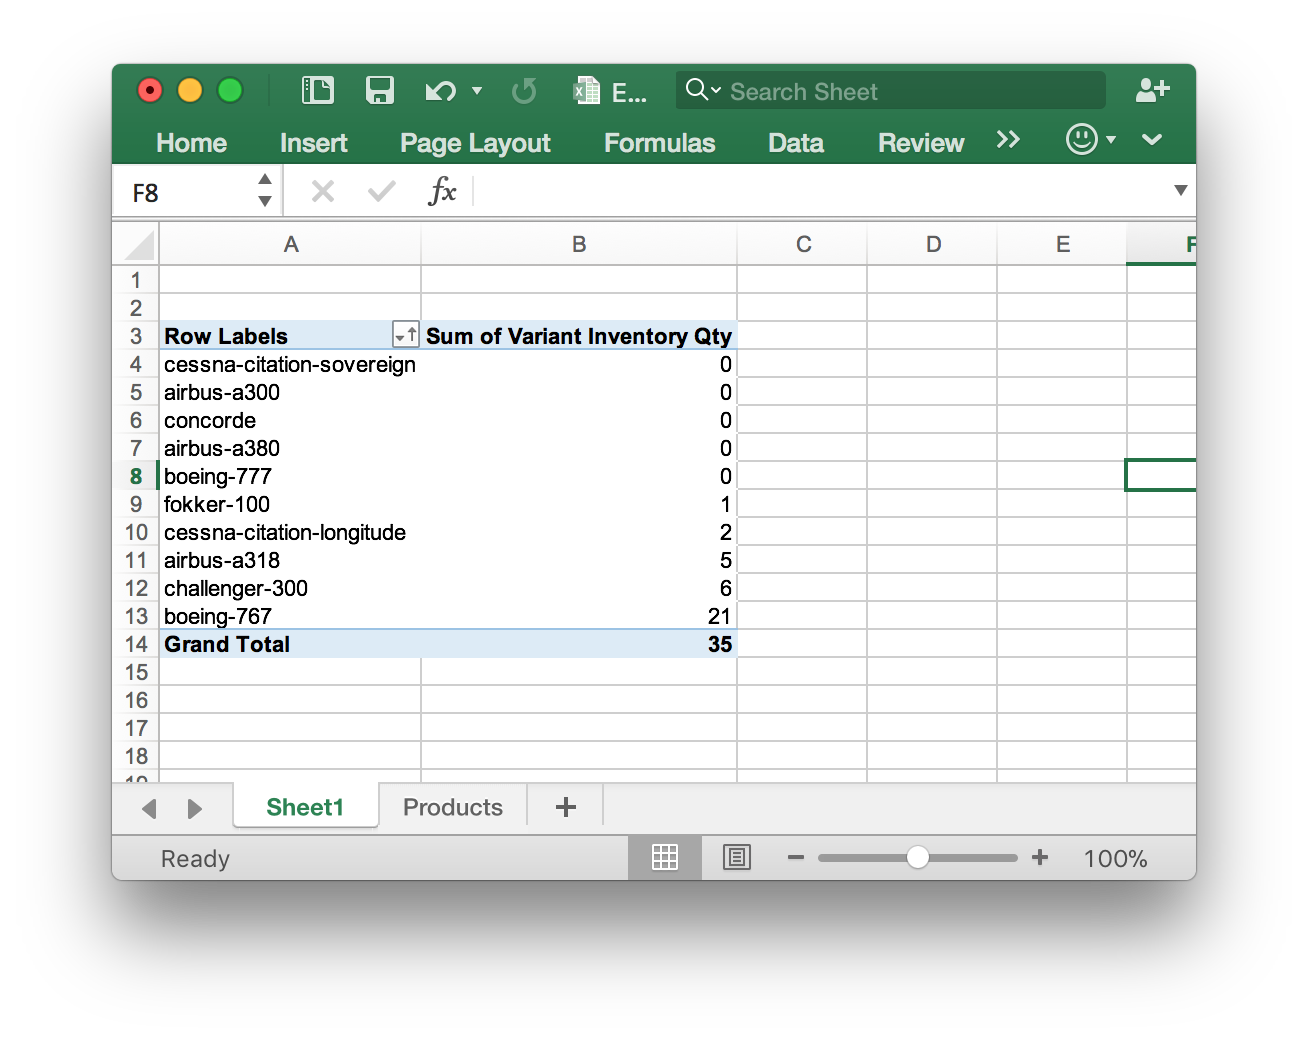 Sorted Pivot Table